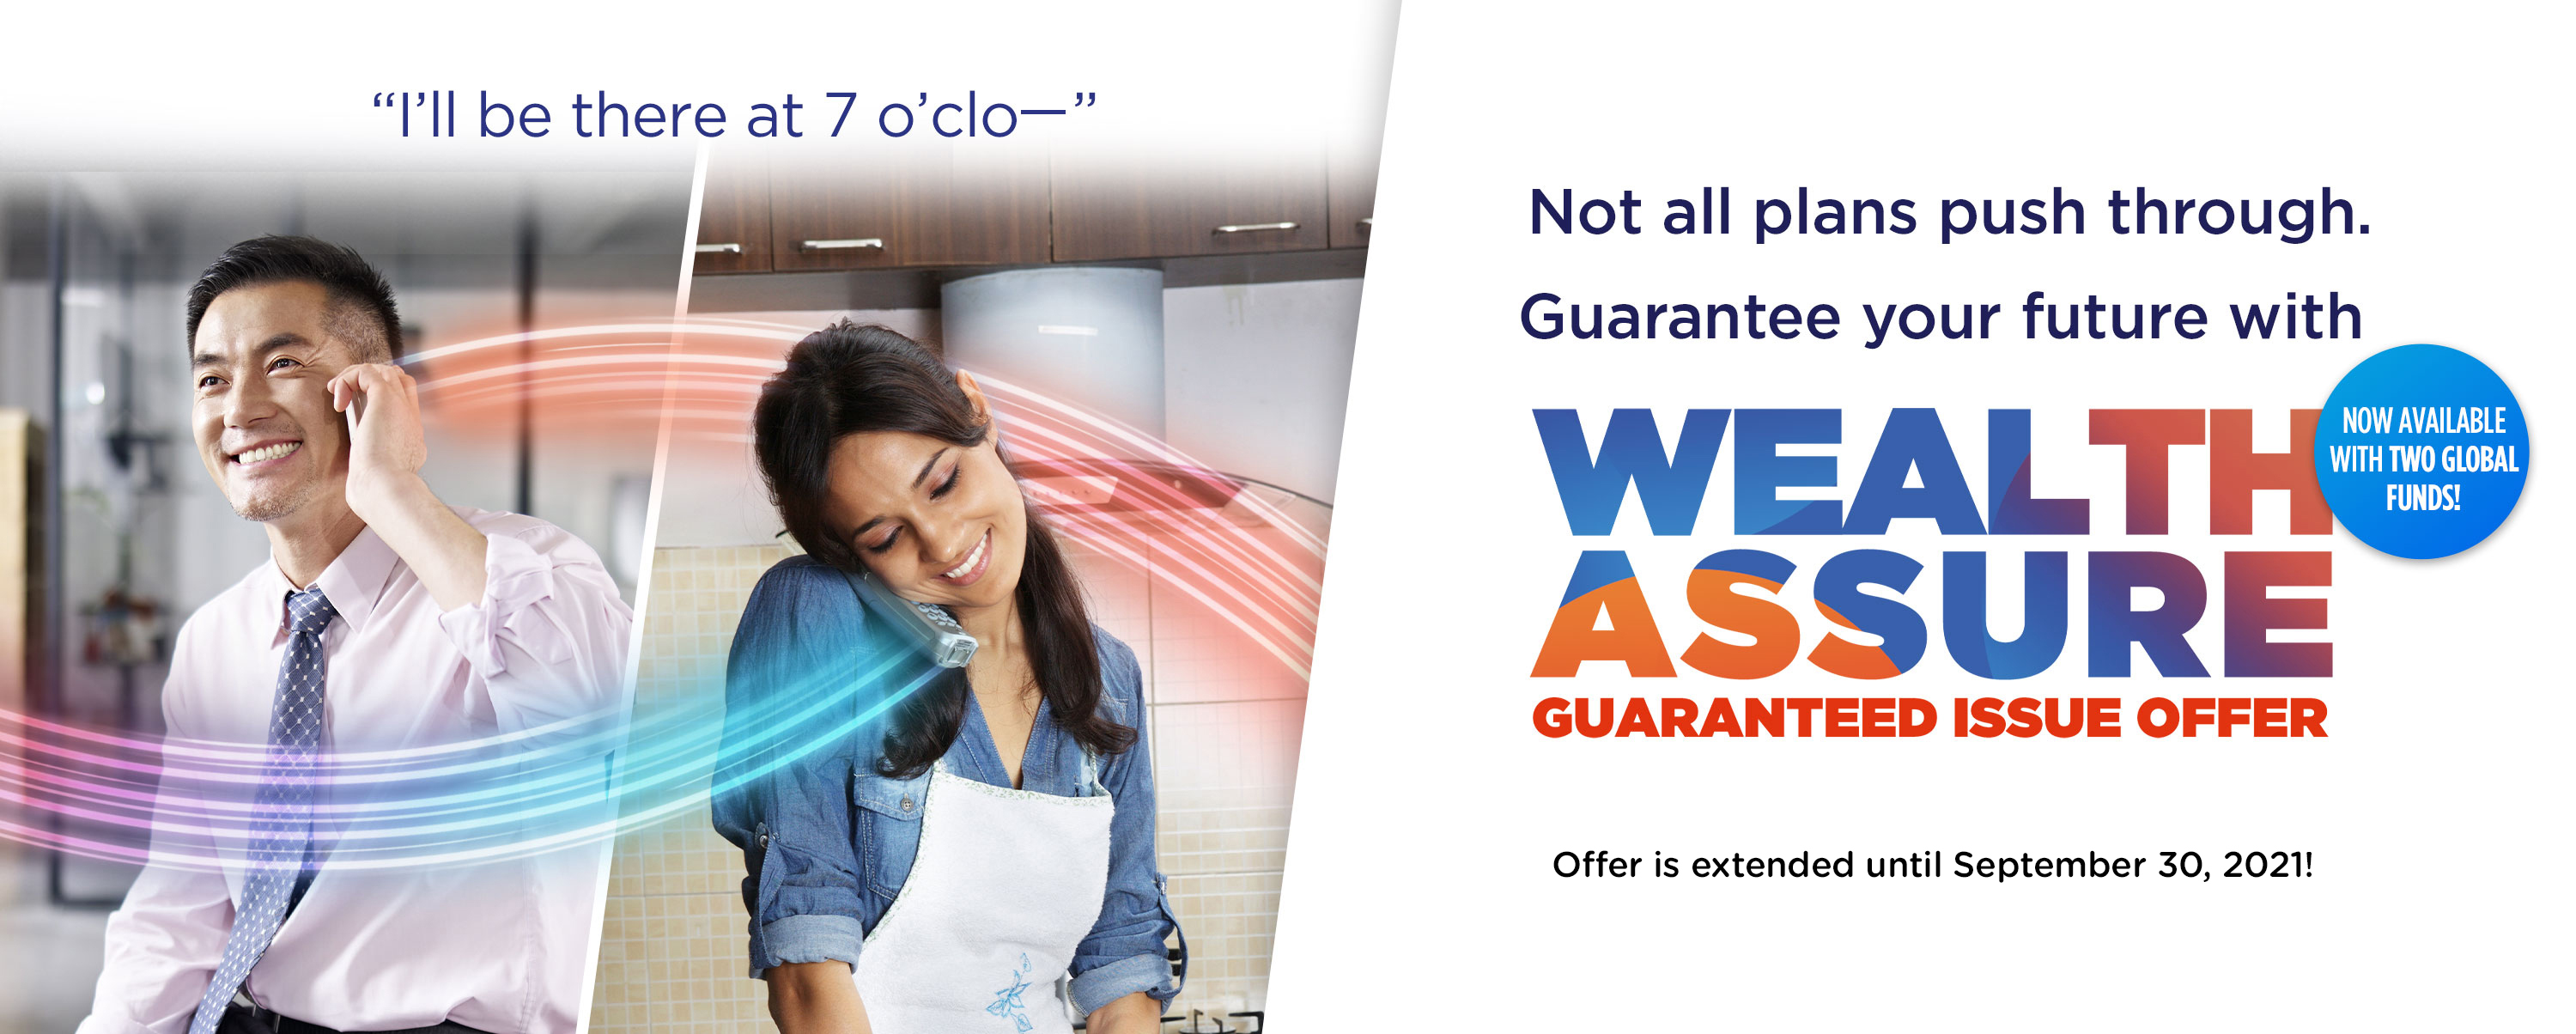 Wealth Assure - Guaranteed Issue Offer